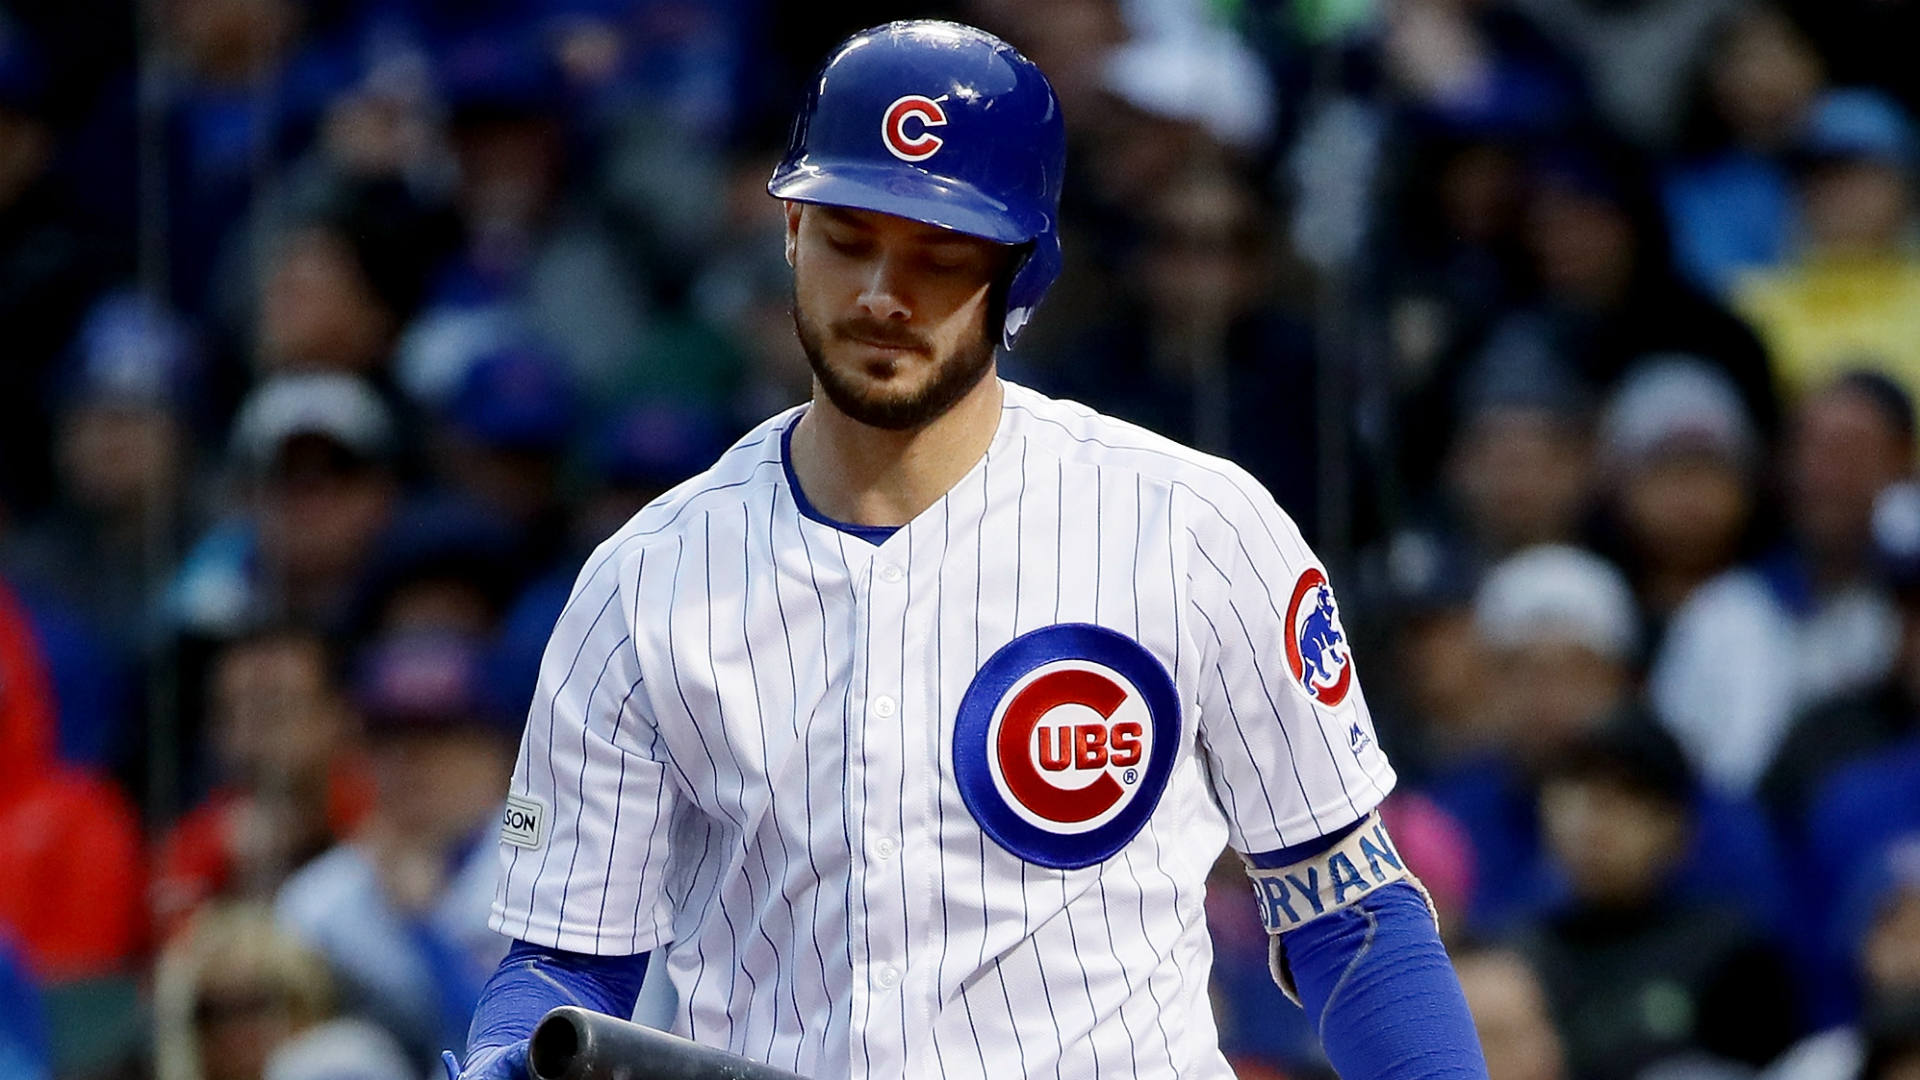 Kris Bryant thought he got traded to the Mets after an apparent prank